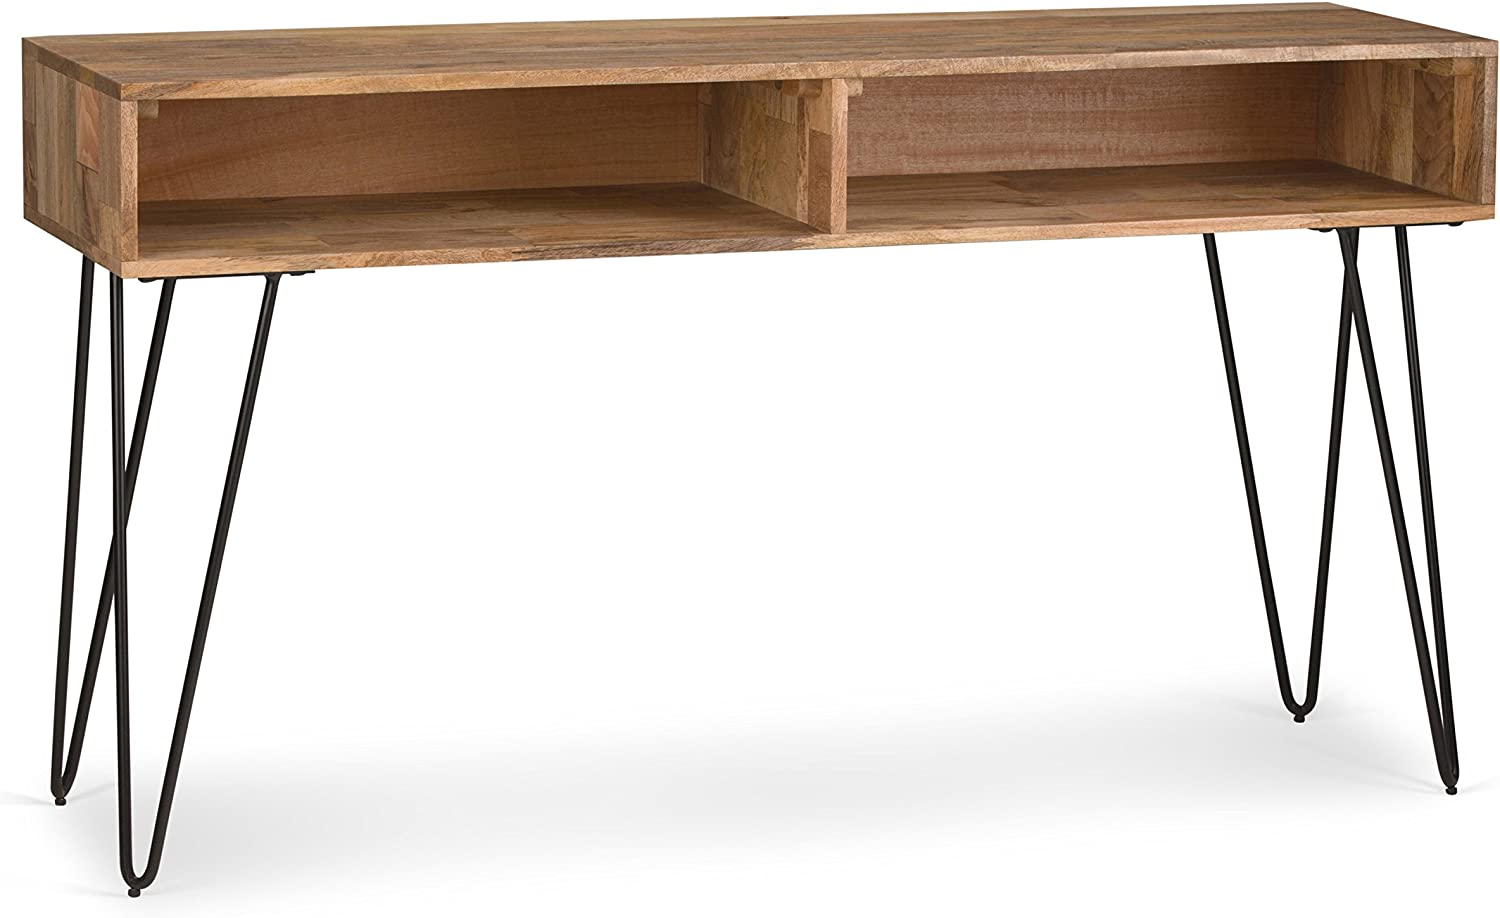 Amazon Com Simpli Home Hunter Solid Wood And Metal 55 Inch Wide Mid Century Modern Console Sofa Entryway Table In Natural With Storage 2 Shelves For The Living Room Entryway And Bedroom Furniture